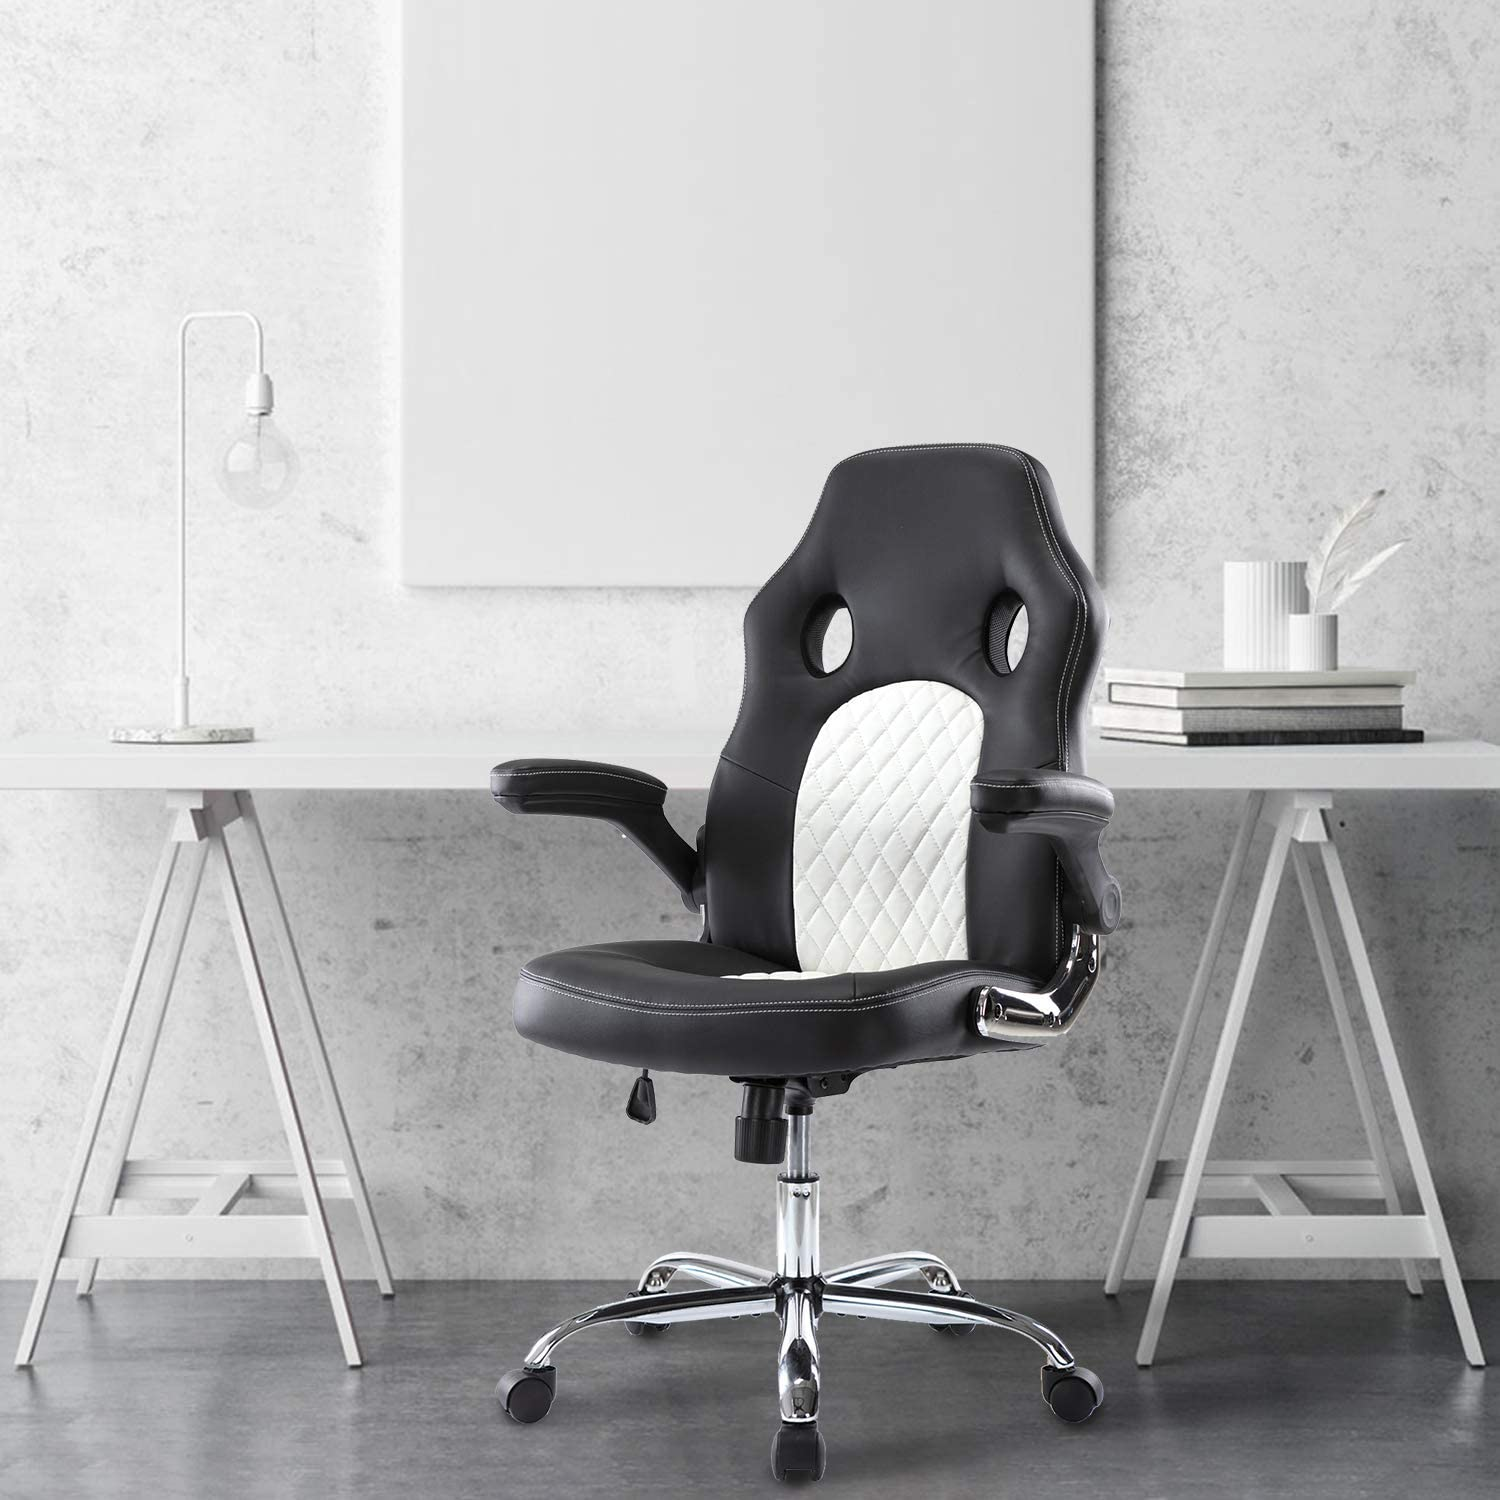 Kennewick - Adjustable Leather Office Gaming Chair